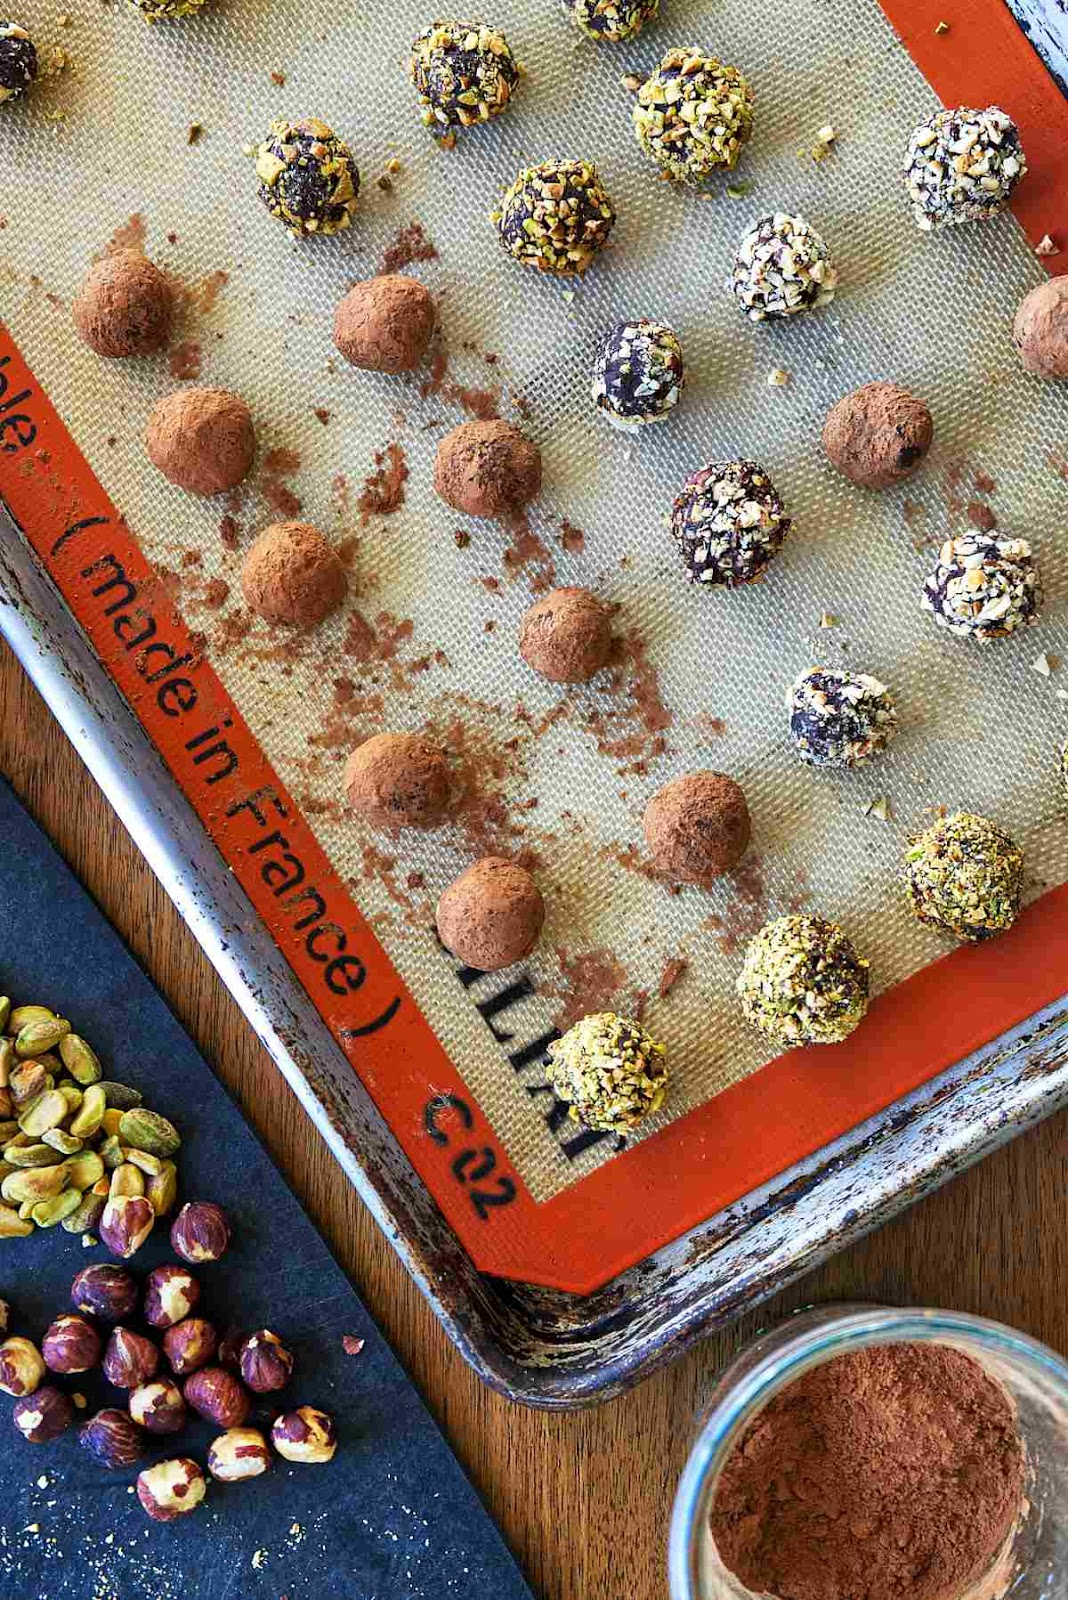 Chocolate balls on a baking sheet with nuts.